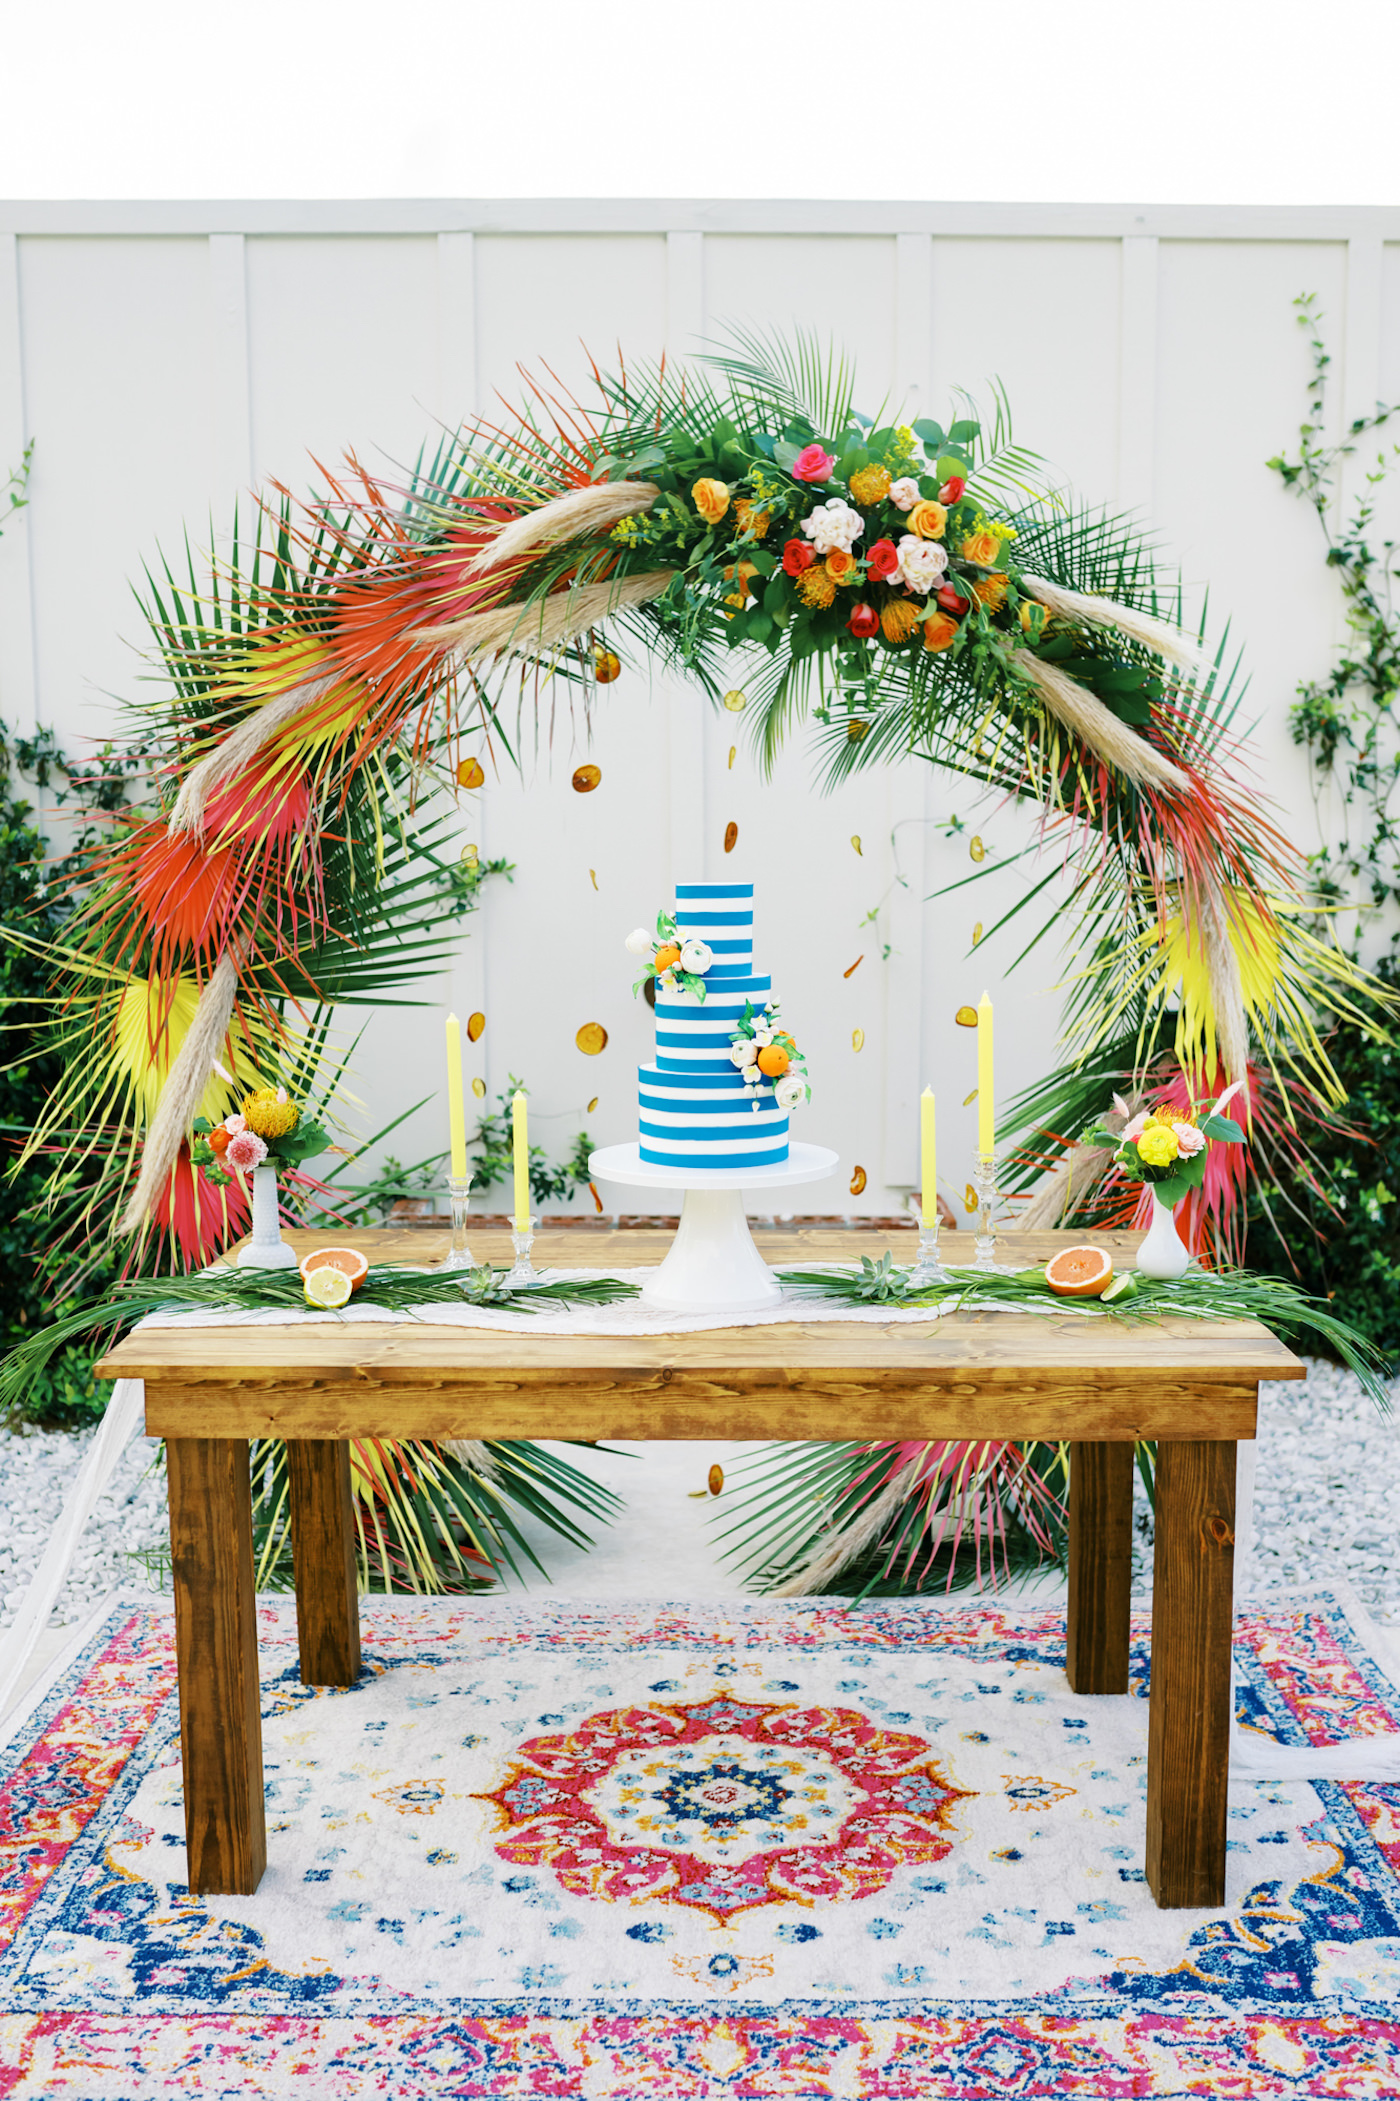 Wood Farm Table Wedding Cake Display | Three Tier Blue and White Stripe Wedding Cake with Fresh Citrus by Tampa Bay Cake Company Bakery | Tropical Florida Citrus Wedding Inspiration | Orange and Yellow Painted Palm Frond Leaf Round Moon Arch Ceremony Backdrop with Pampas Grass and Hanging Orange Slices | Bright Colorful Floral Arrangement with Orange and Pink Roses and Yellow Pincushion Protea